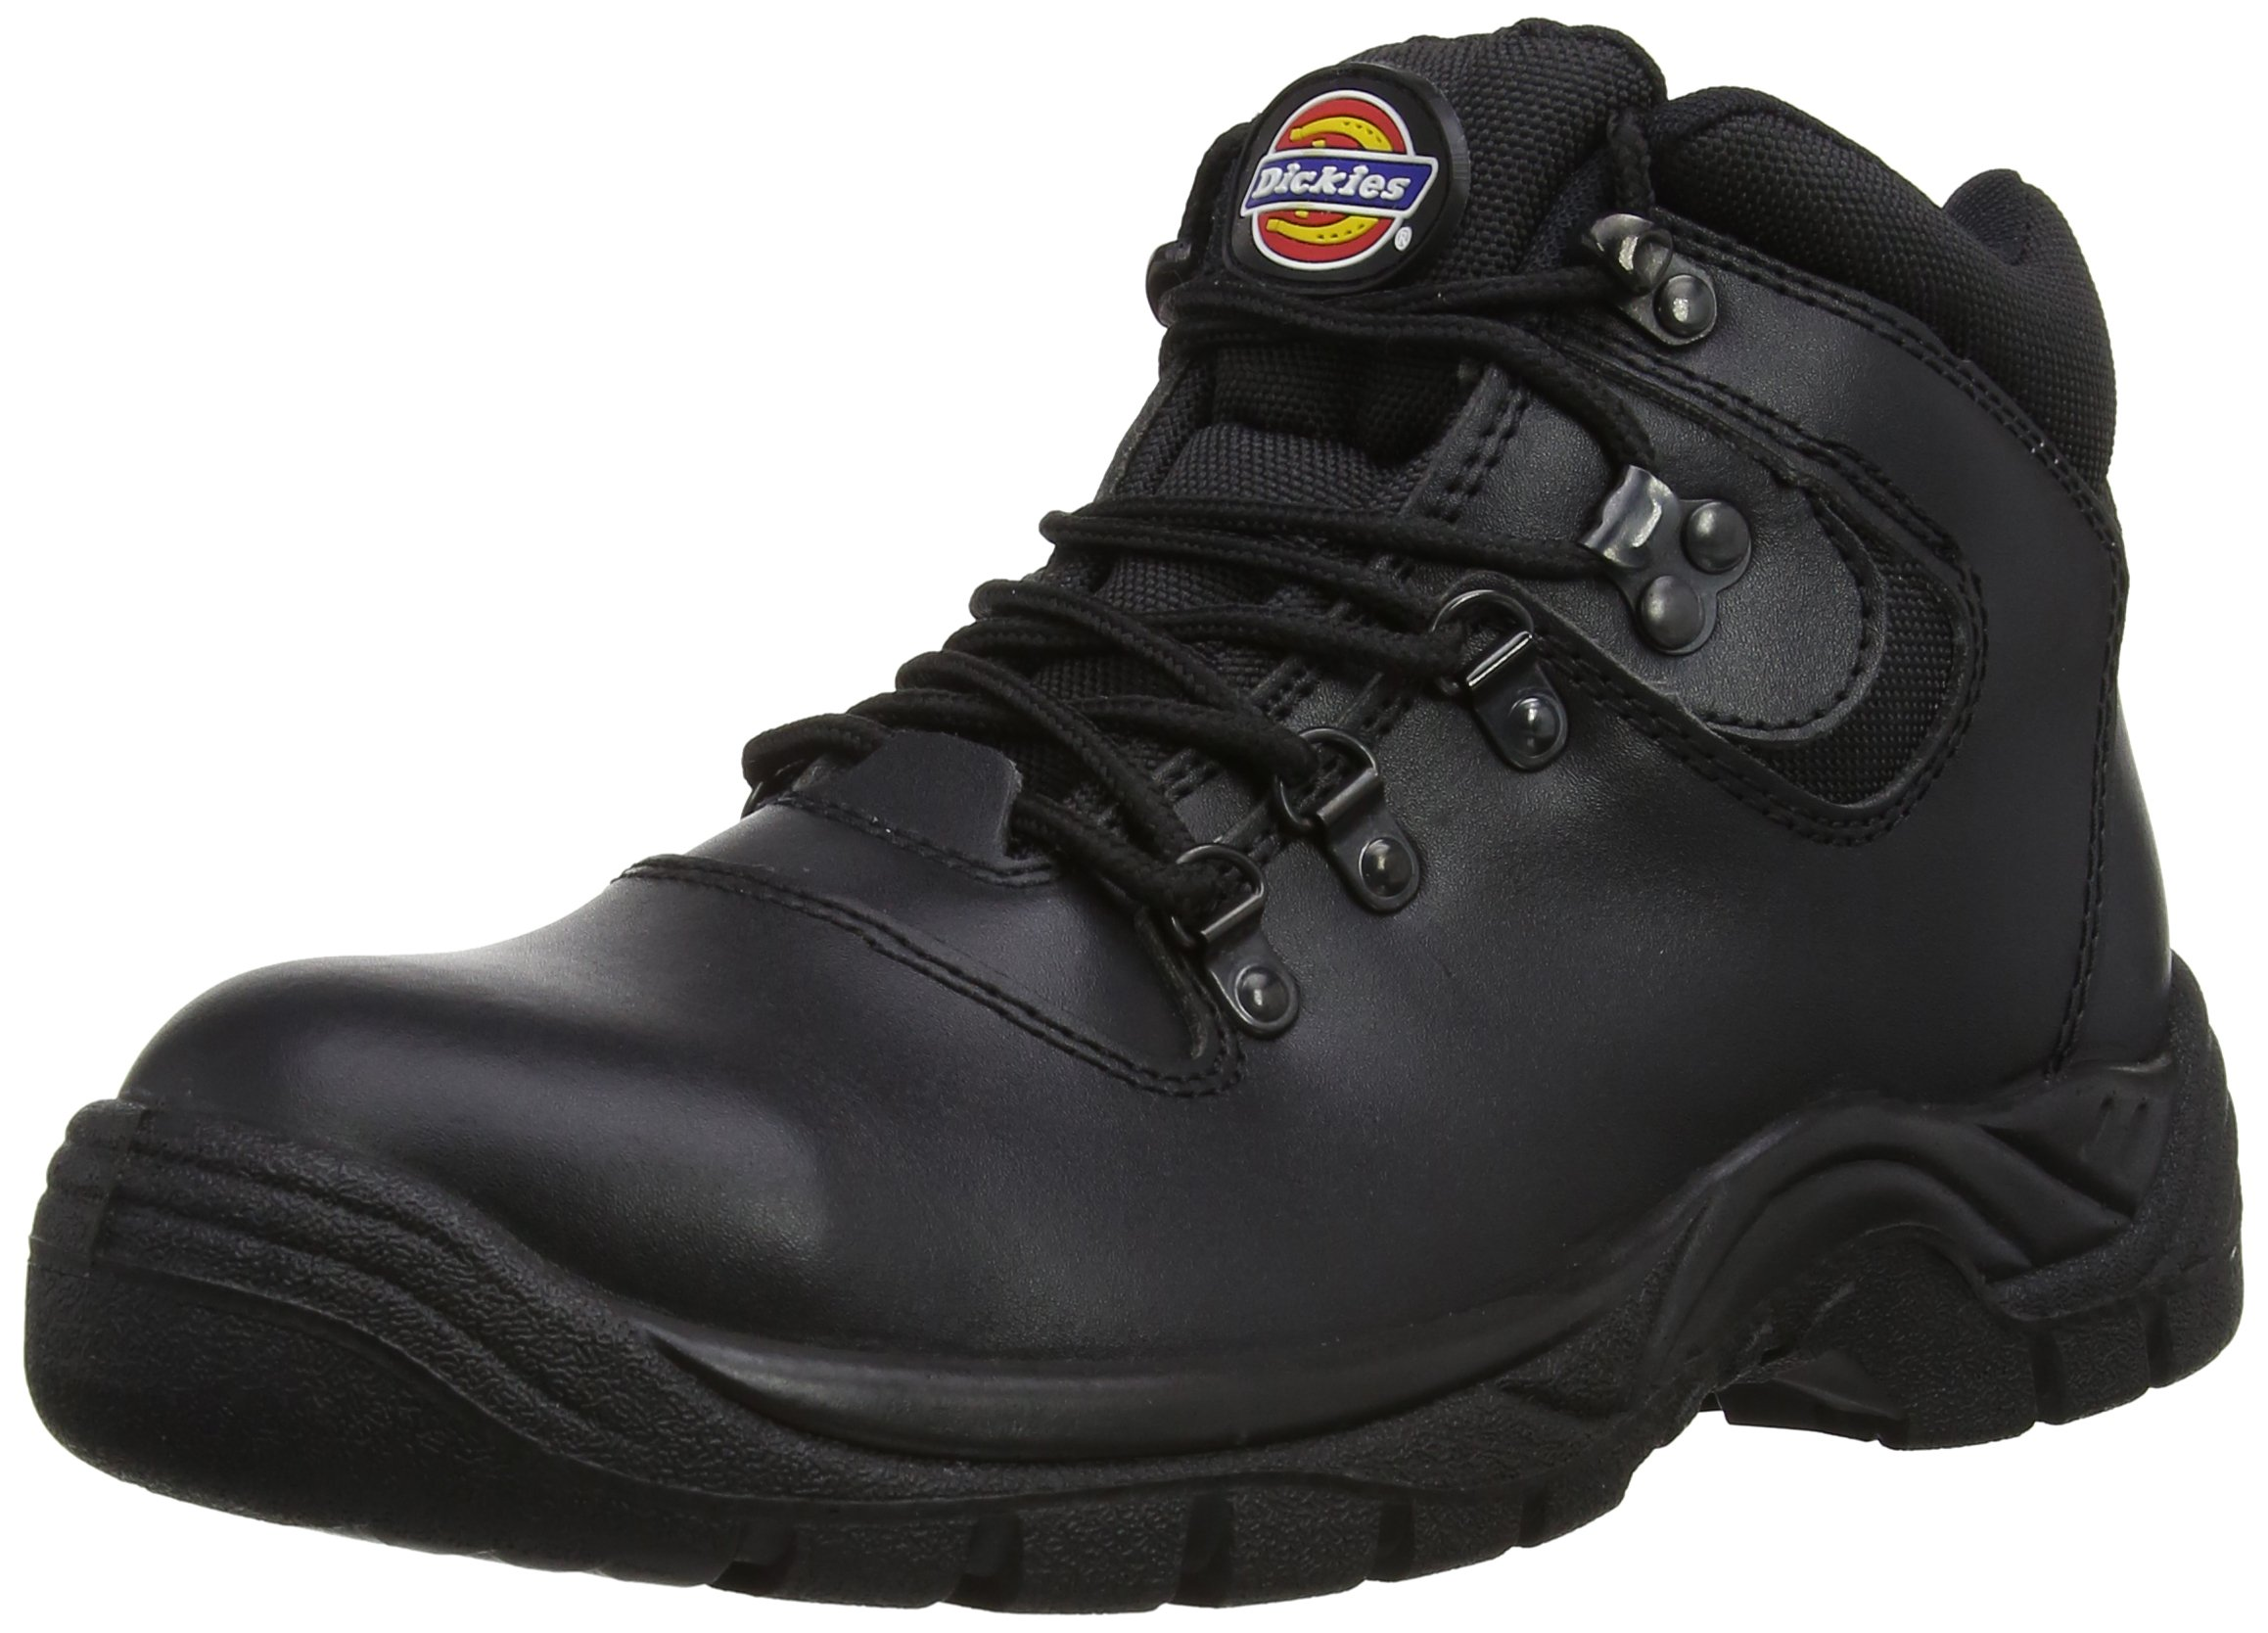 Dickies Fury Super Steel Toe-cap Hiker Safety Boot / Footwear (10.5 US) (Black)